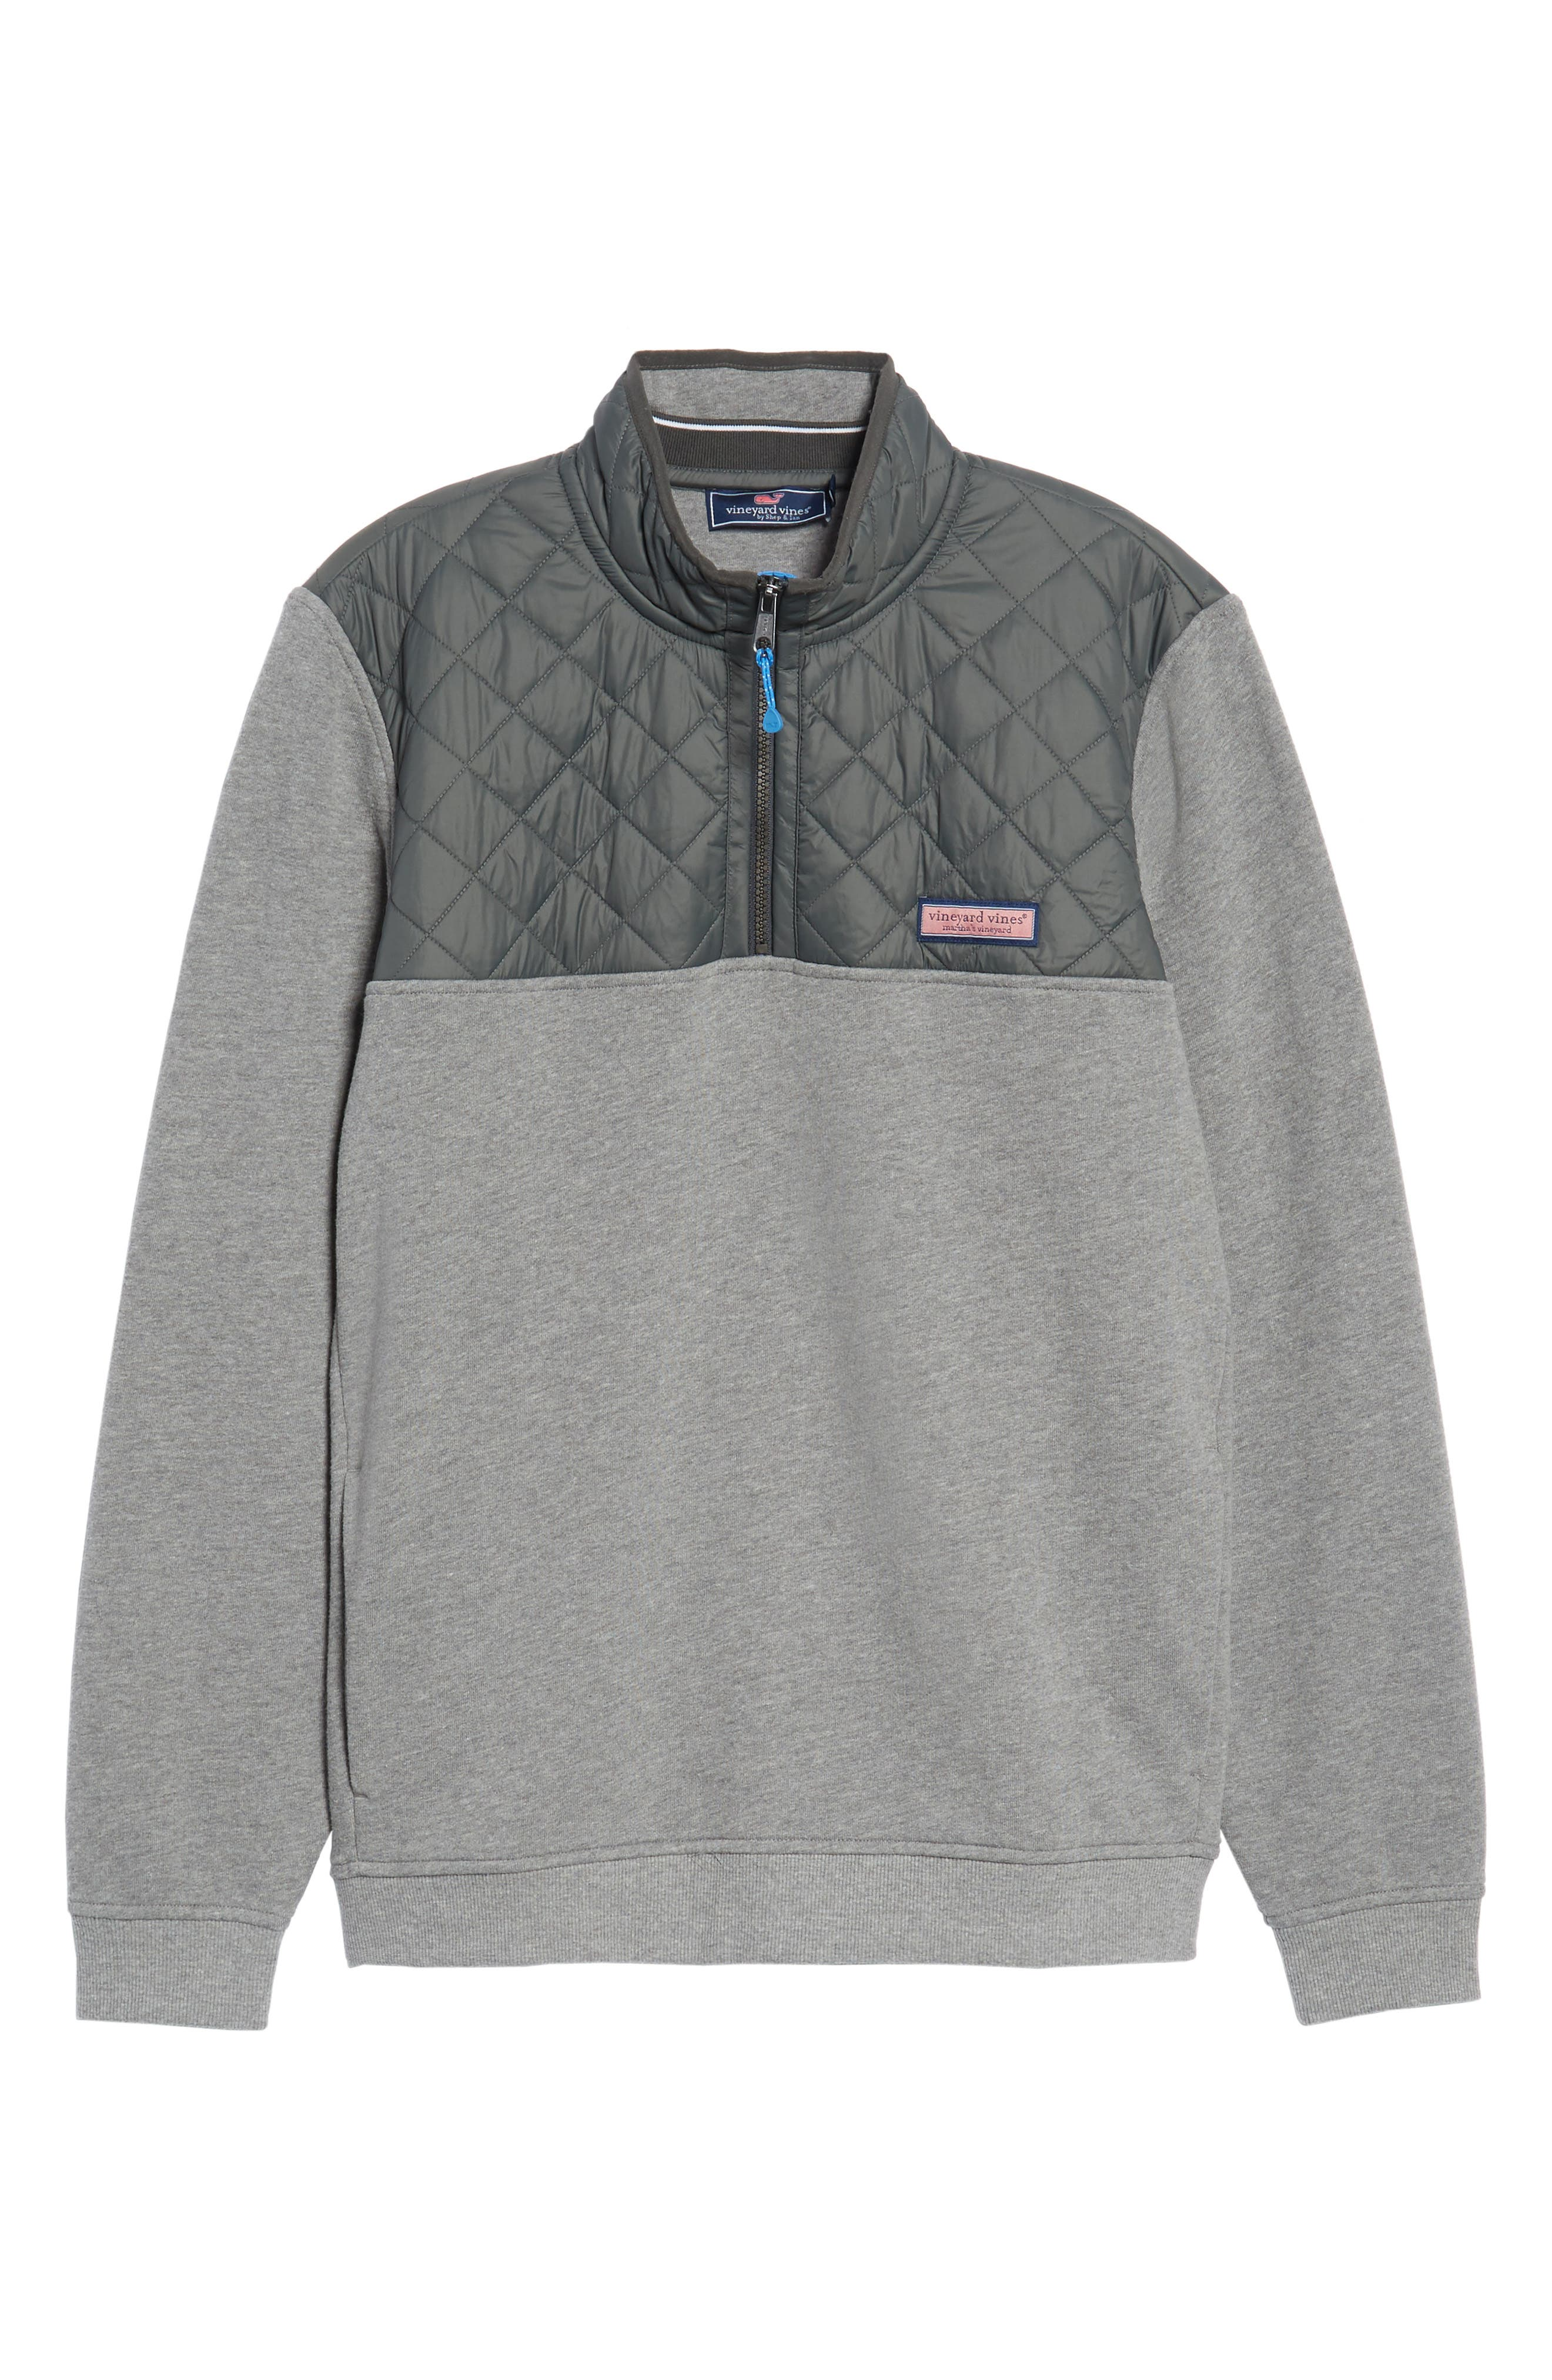 Shep Performance Quilted Yoke Quarter Zip Pullover,                             Alternate thumbnail 6, color,                             030